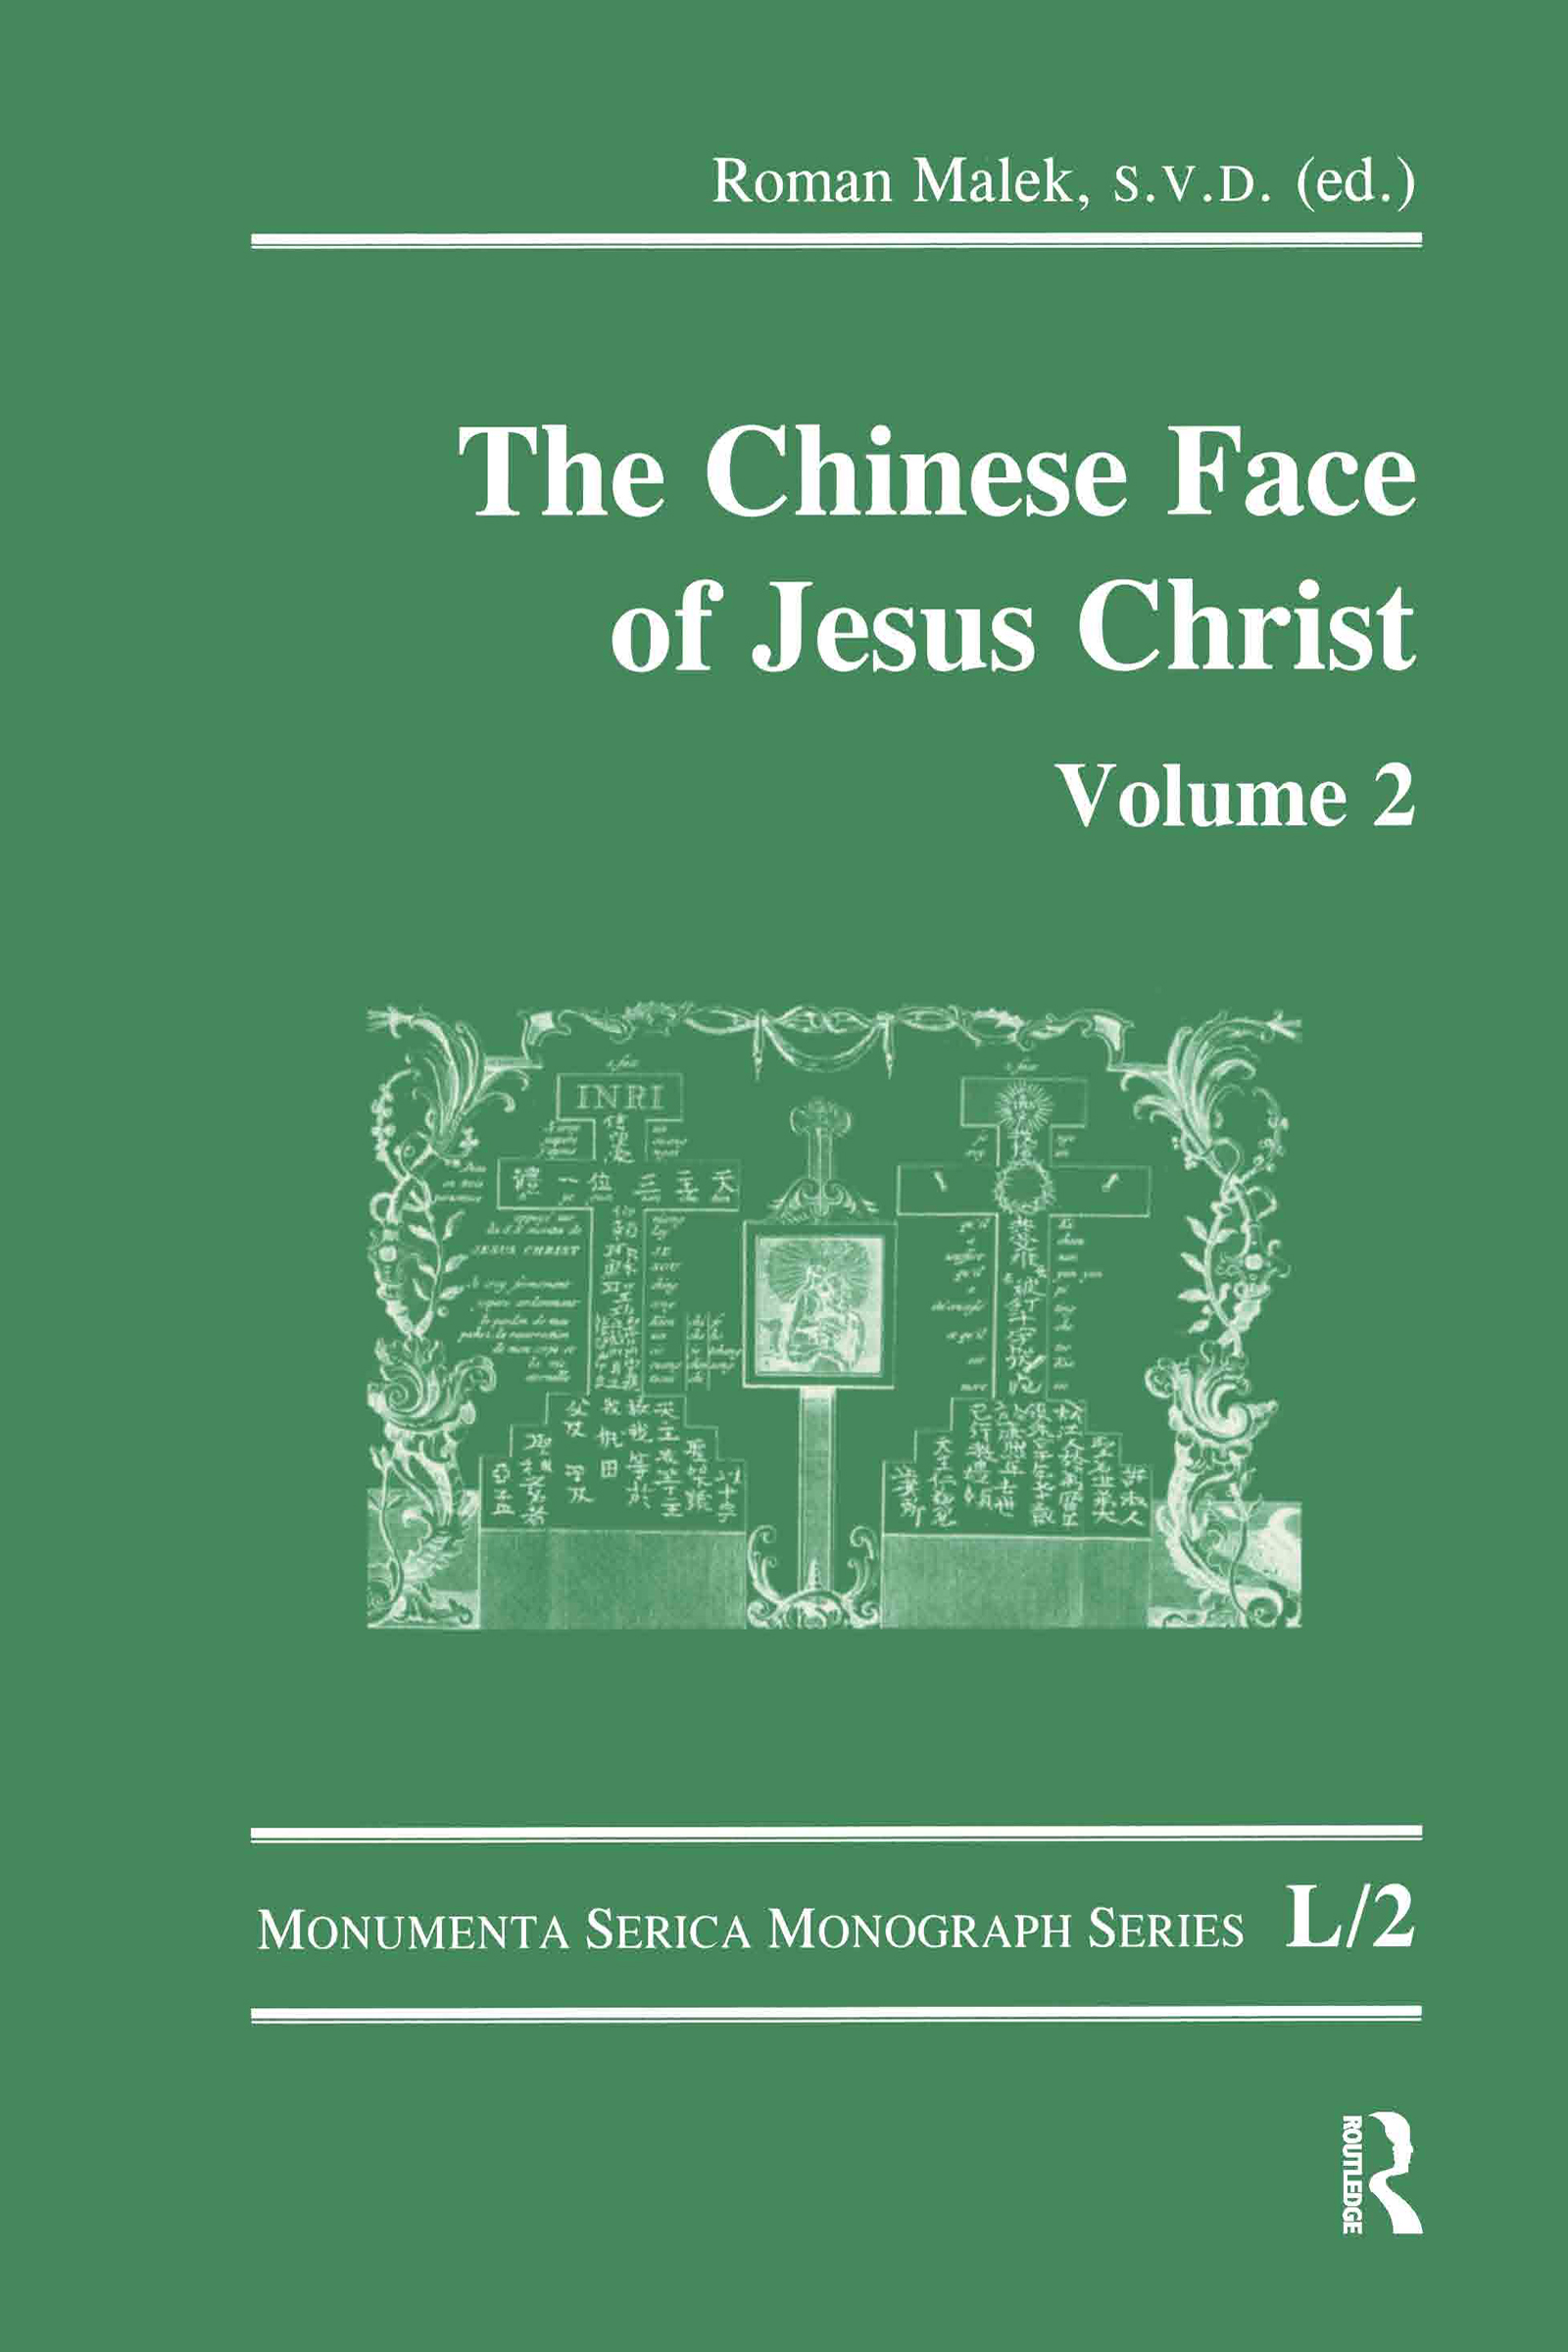 The Chinese Face of Jesus Christ: Volume 2 book cover